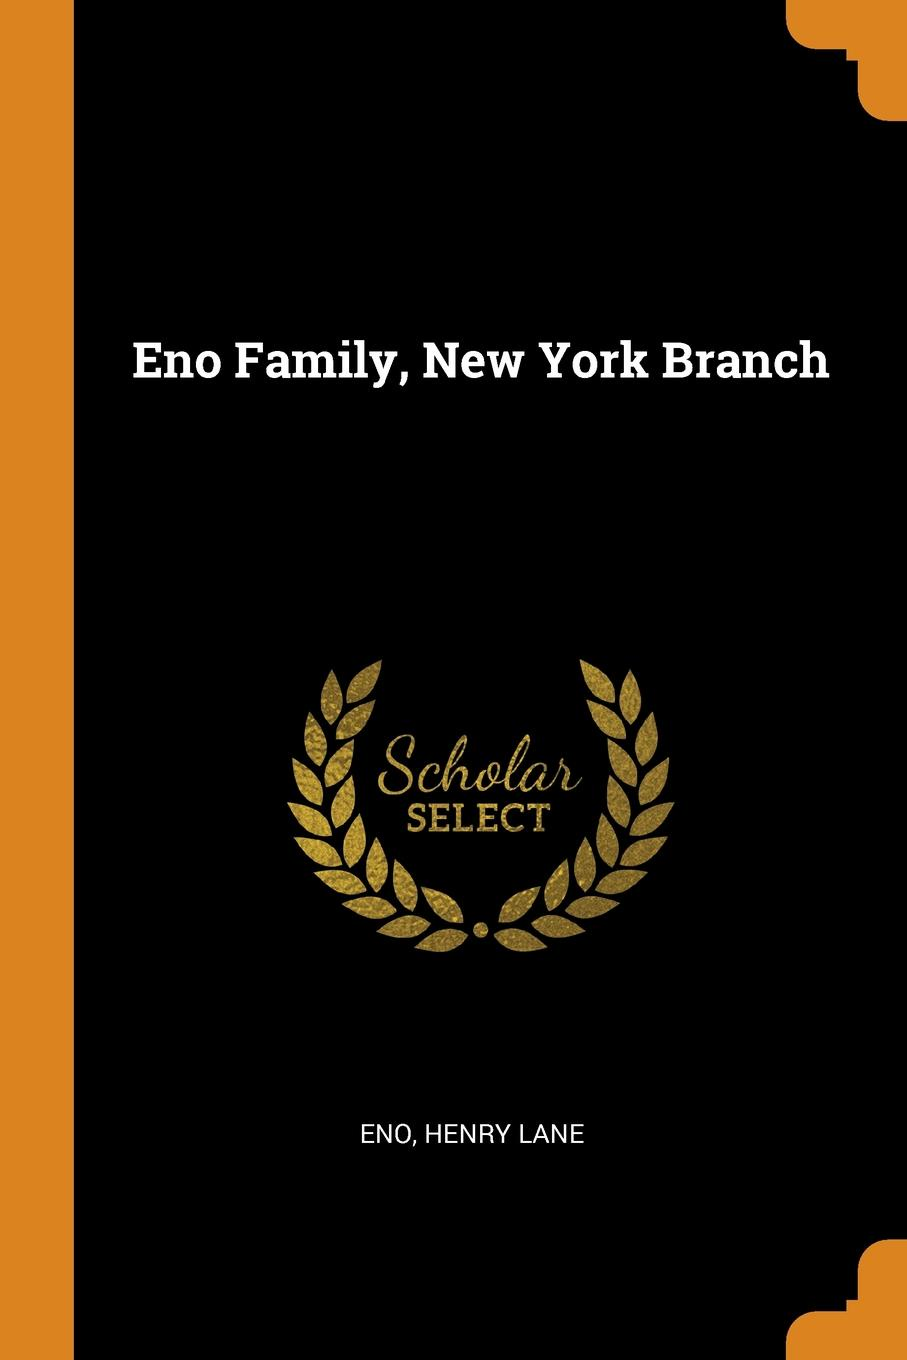 Eno Henry Lane Eno Family, New York Branch